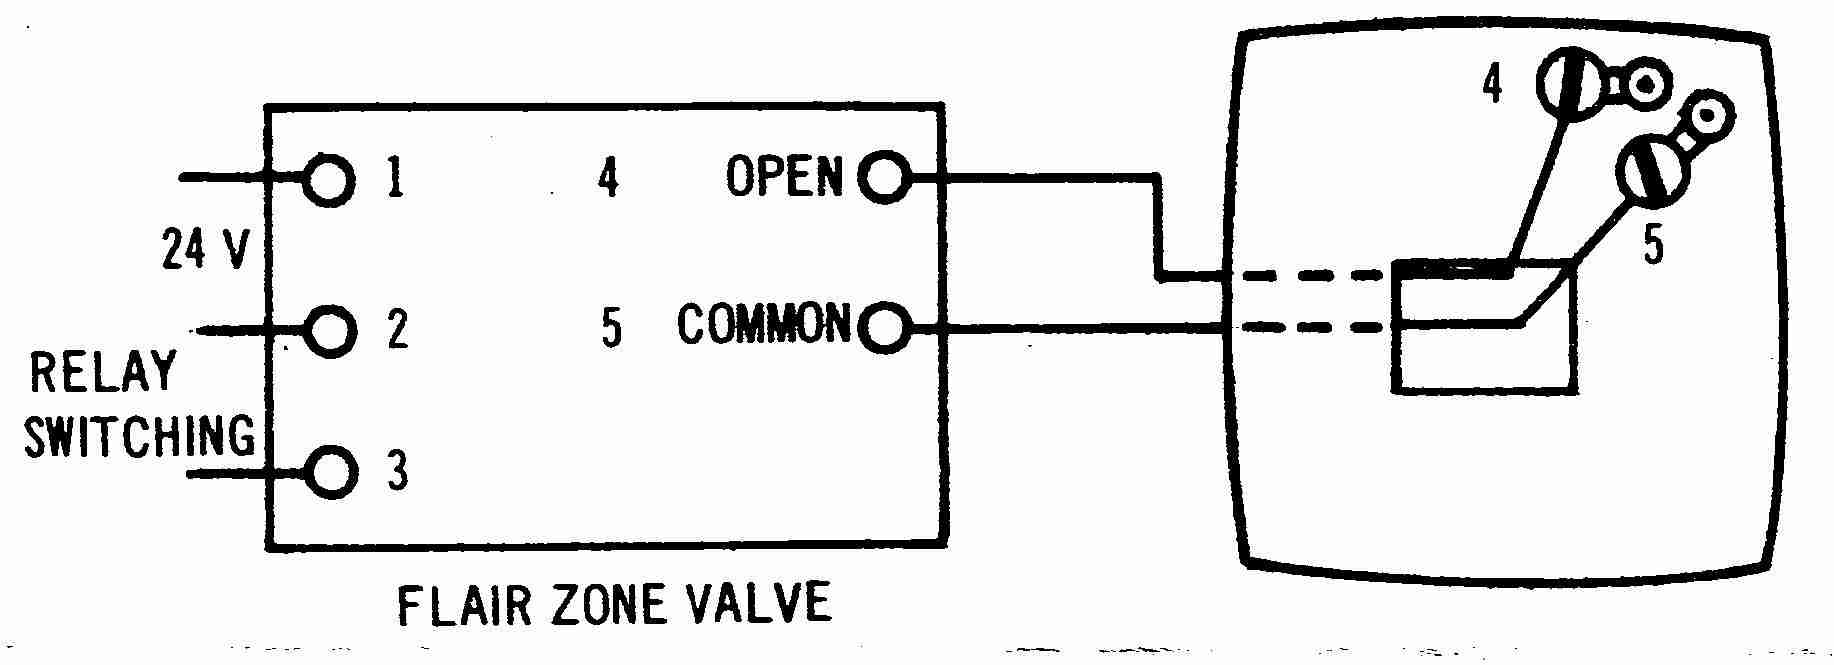 hight resolution of room thermostat wiring diagrams for hvac systems honeywell thermostat wiring problems dual zone thermostat wiring diagram